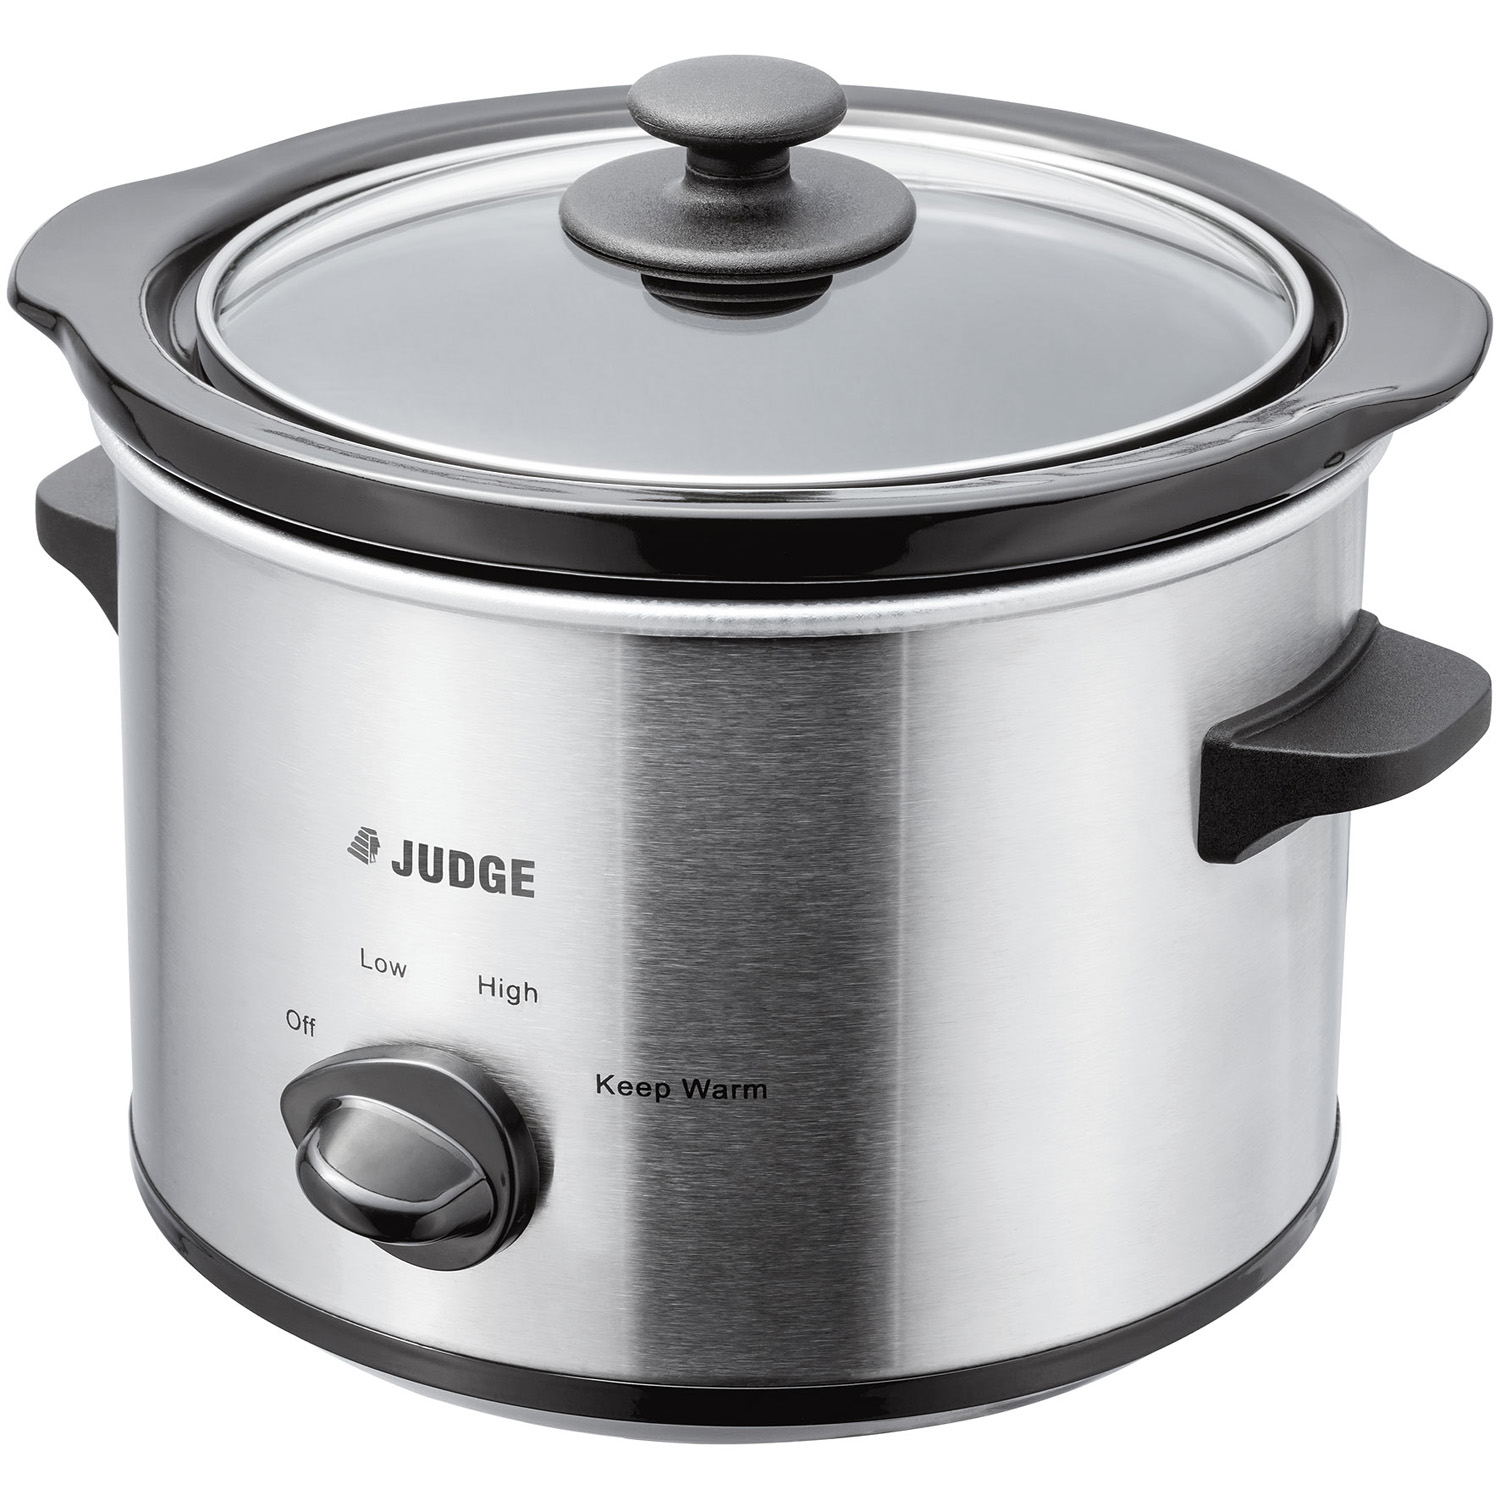 Image of Judge 1.5 Litre Slow Cooker, Stainless Steel